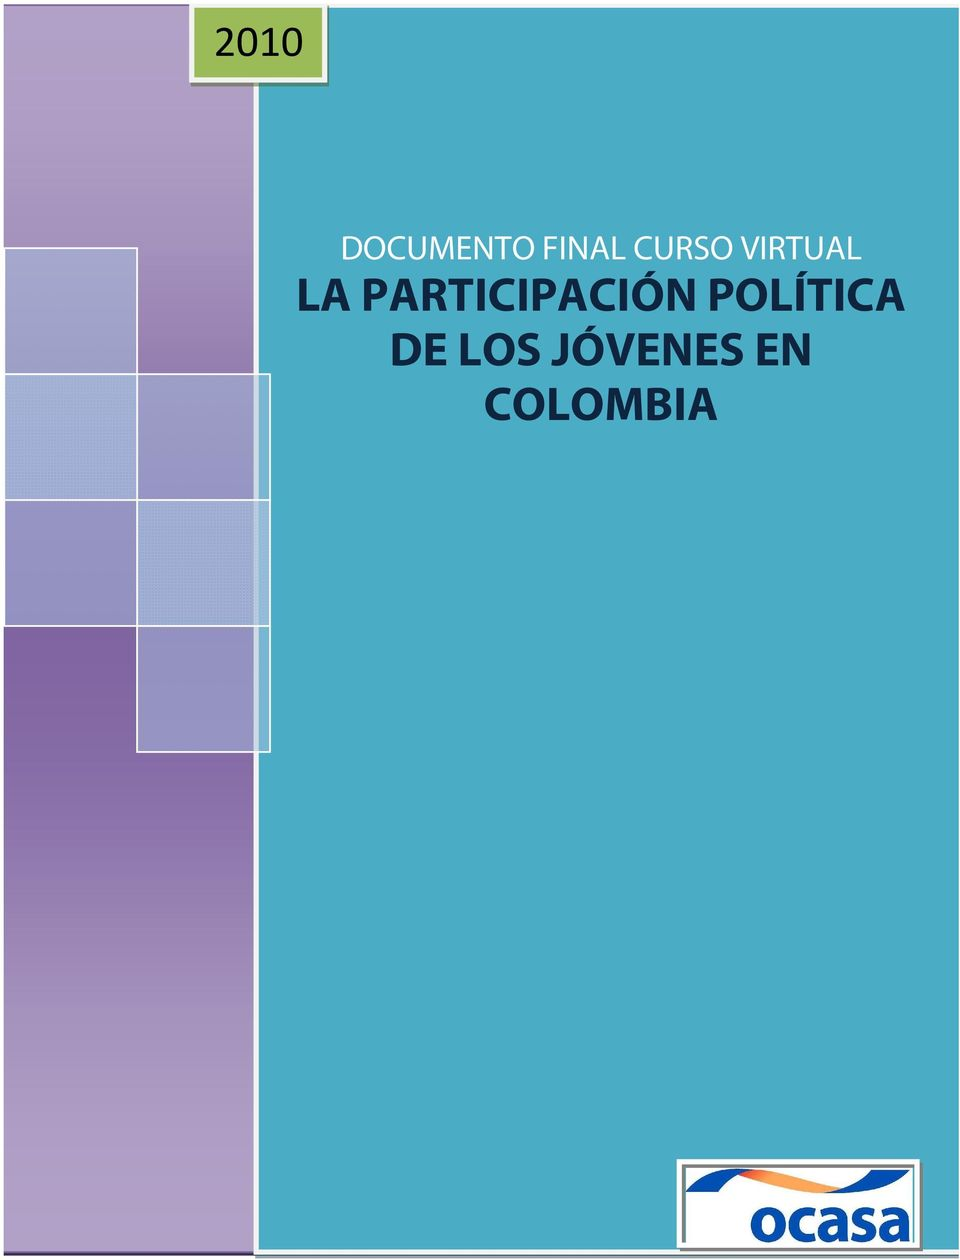 COLOMBIA Documento final curso virtual